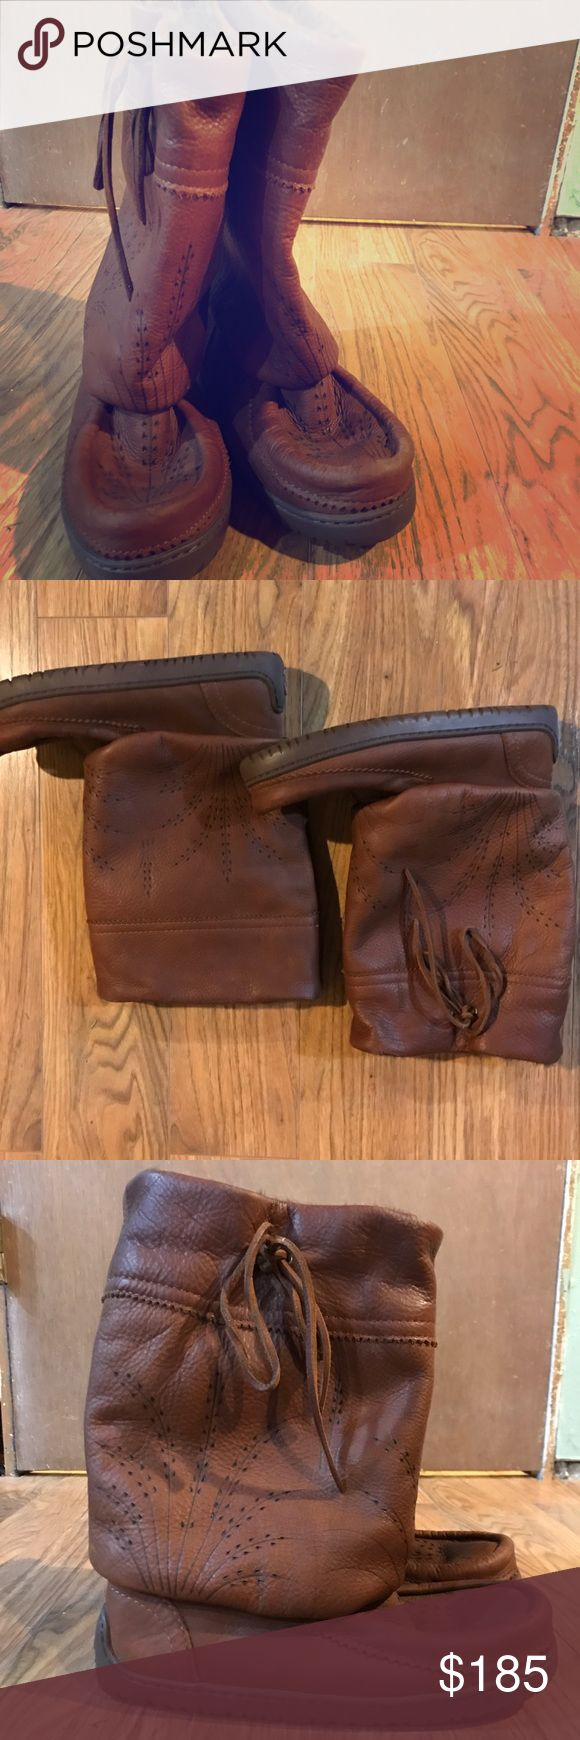 Manitobah Mukluk Mid calf - Brown Light warn a handful of times. Very warm, yet fashionable, winter boots.  Size 8. Muk Luks Shoes Winter & Rain Boots